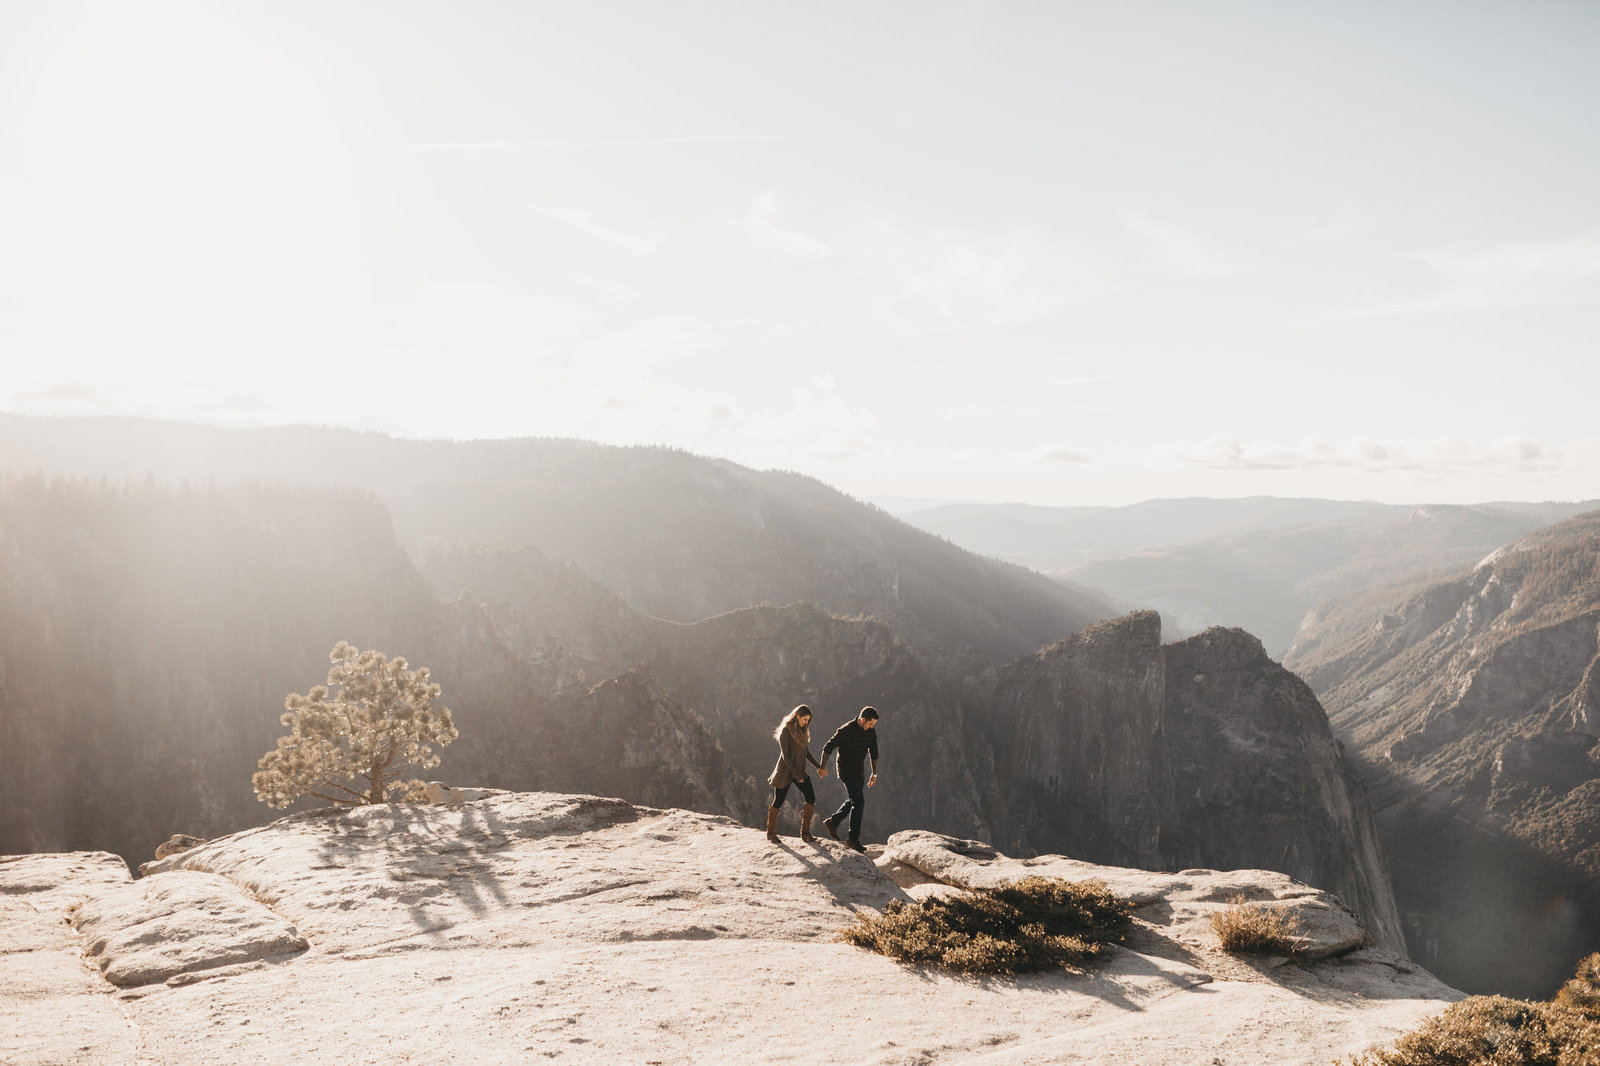 athena-and-camron-seattle-wedding-photographer-taft-point-yosemite-engagement-shoot10-mountains-epic-people